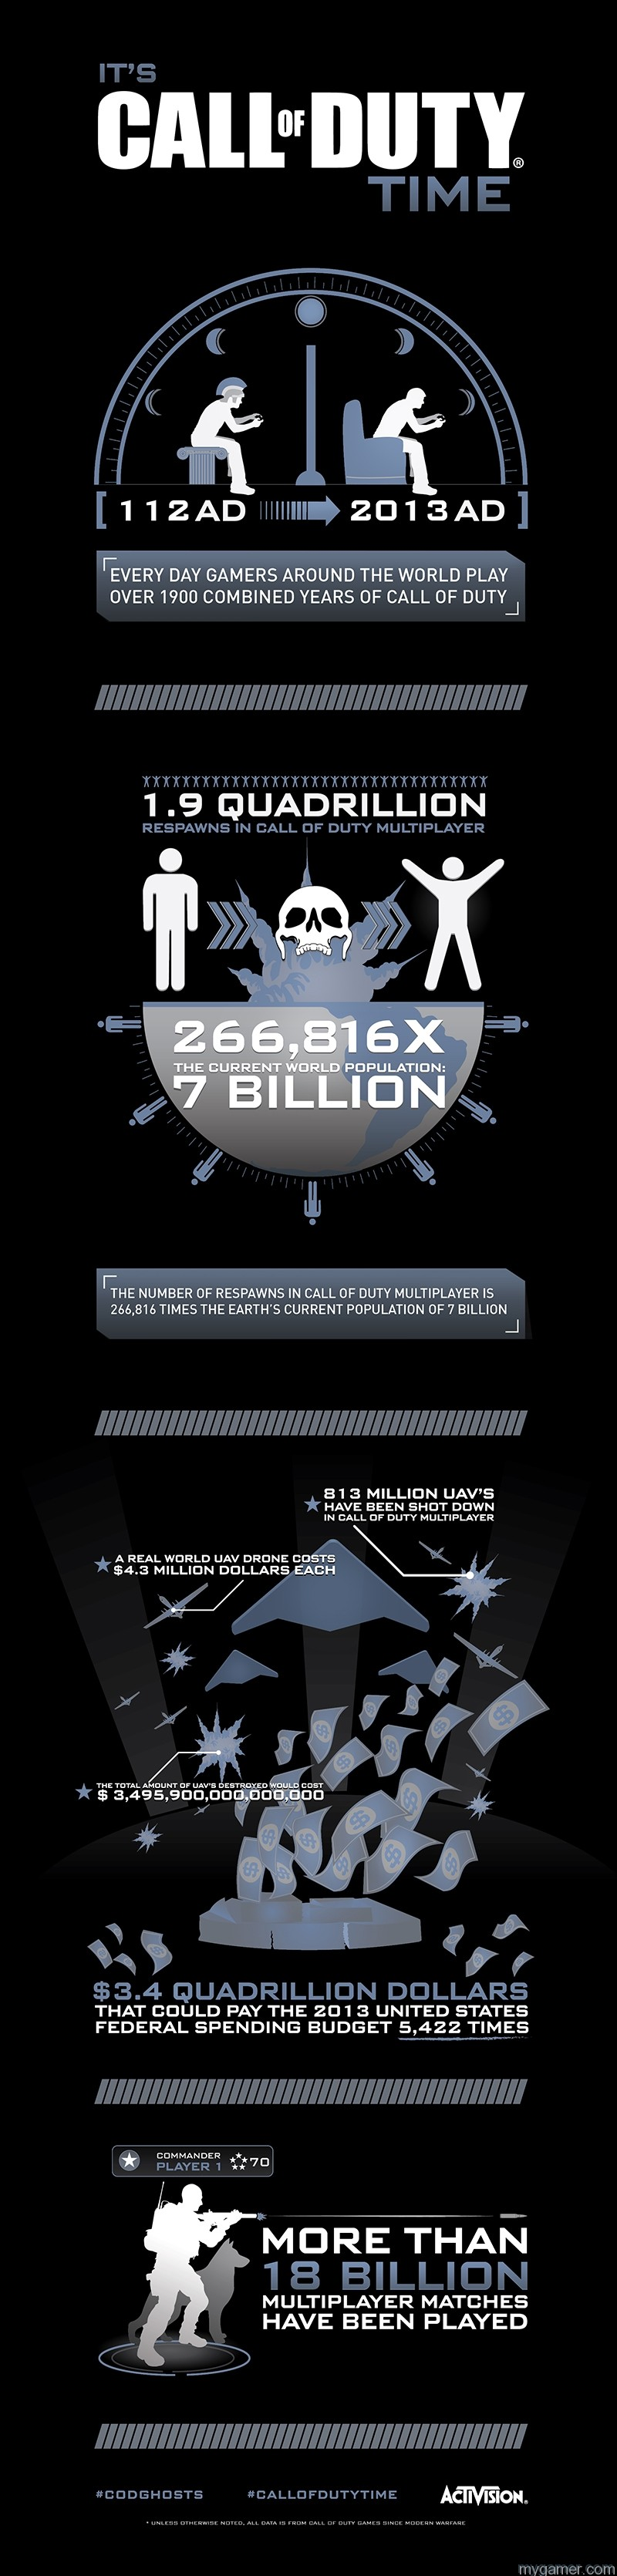 Call of Duty Stats Released Call of Duty Stats Released Call of Duty November Infographic